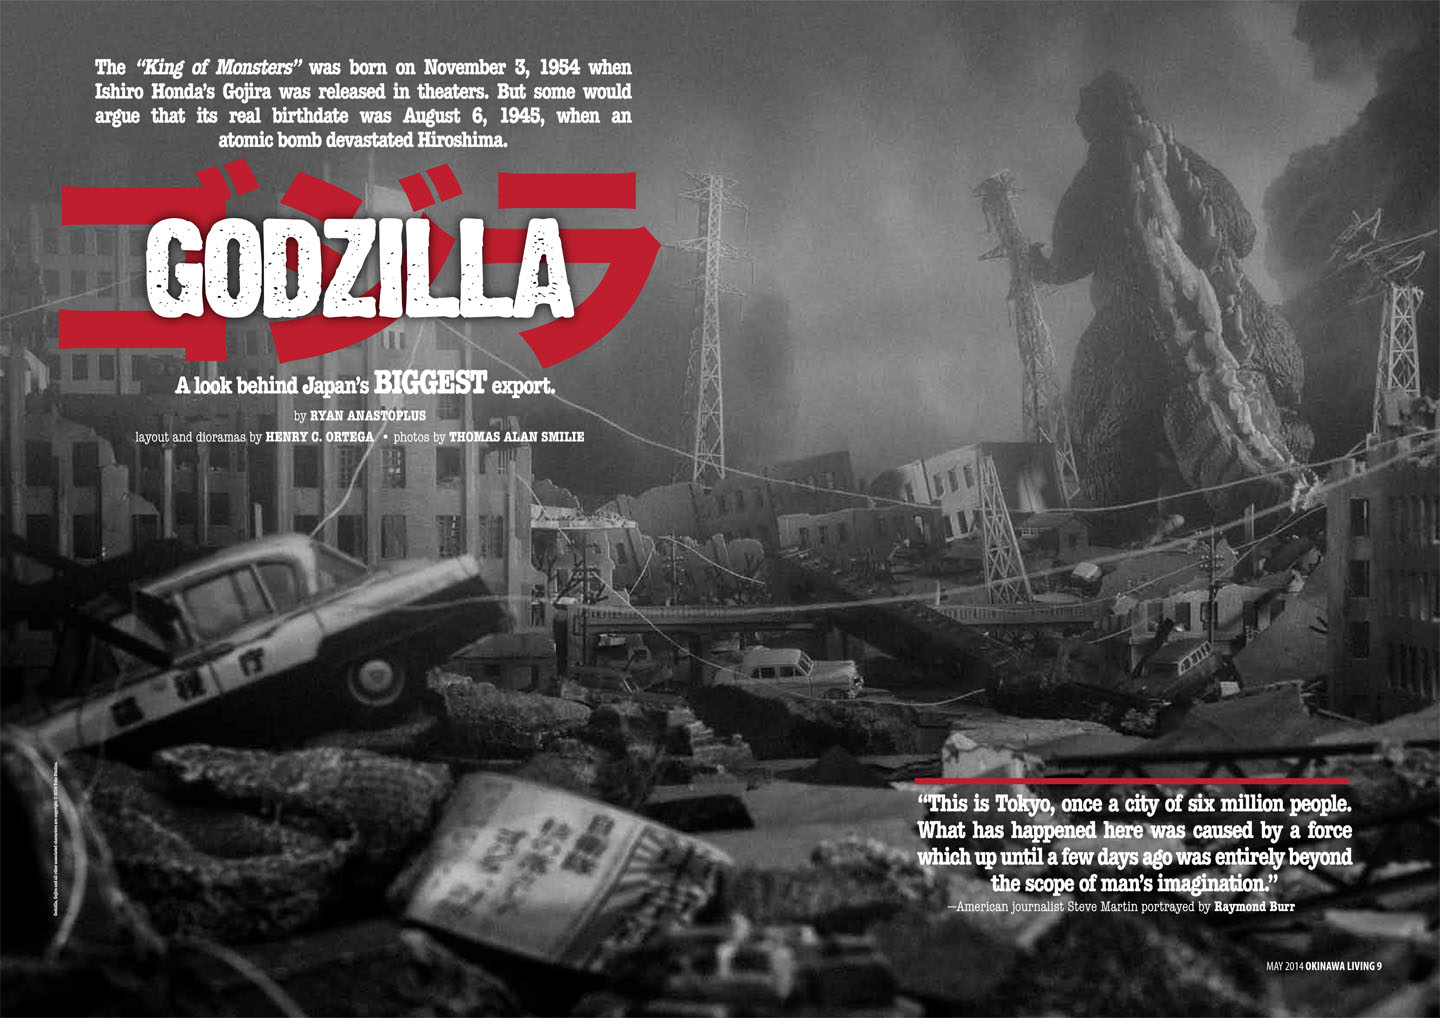 Godzilla diorama spread from May 2014 Okinawa Living feature on the 60th Anniversary of Godzilla.